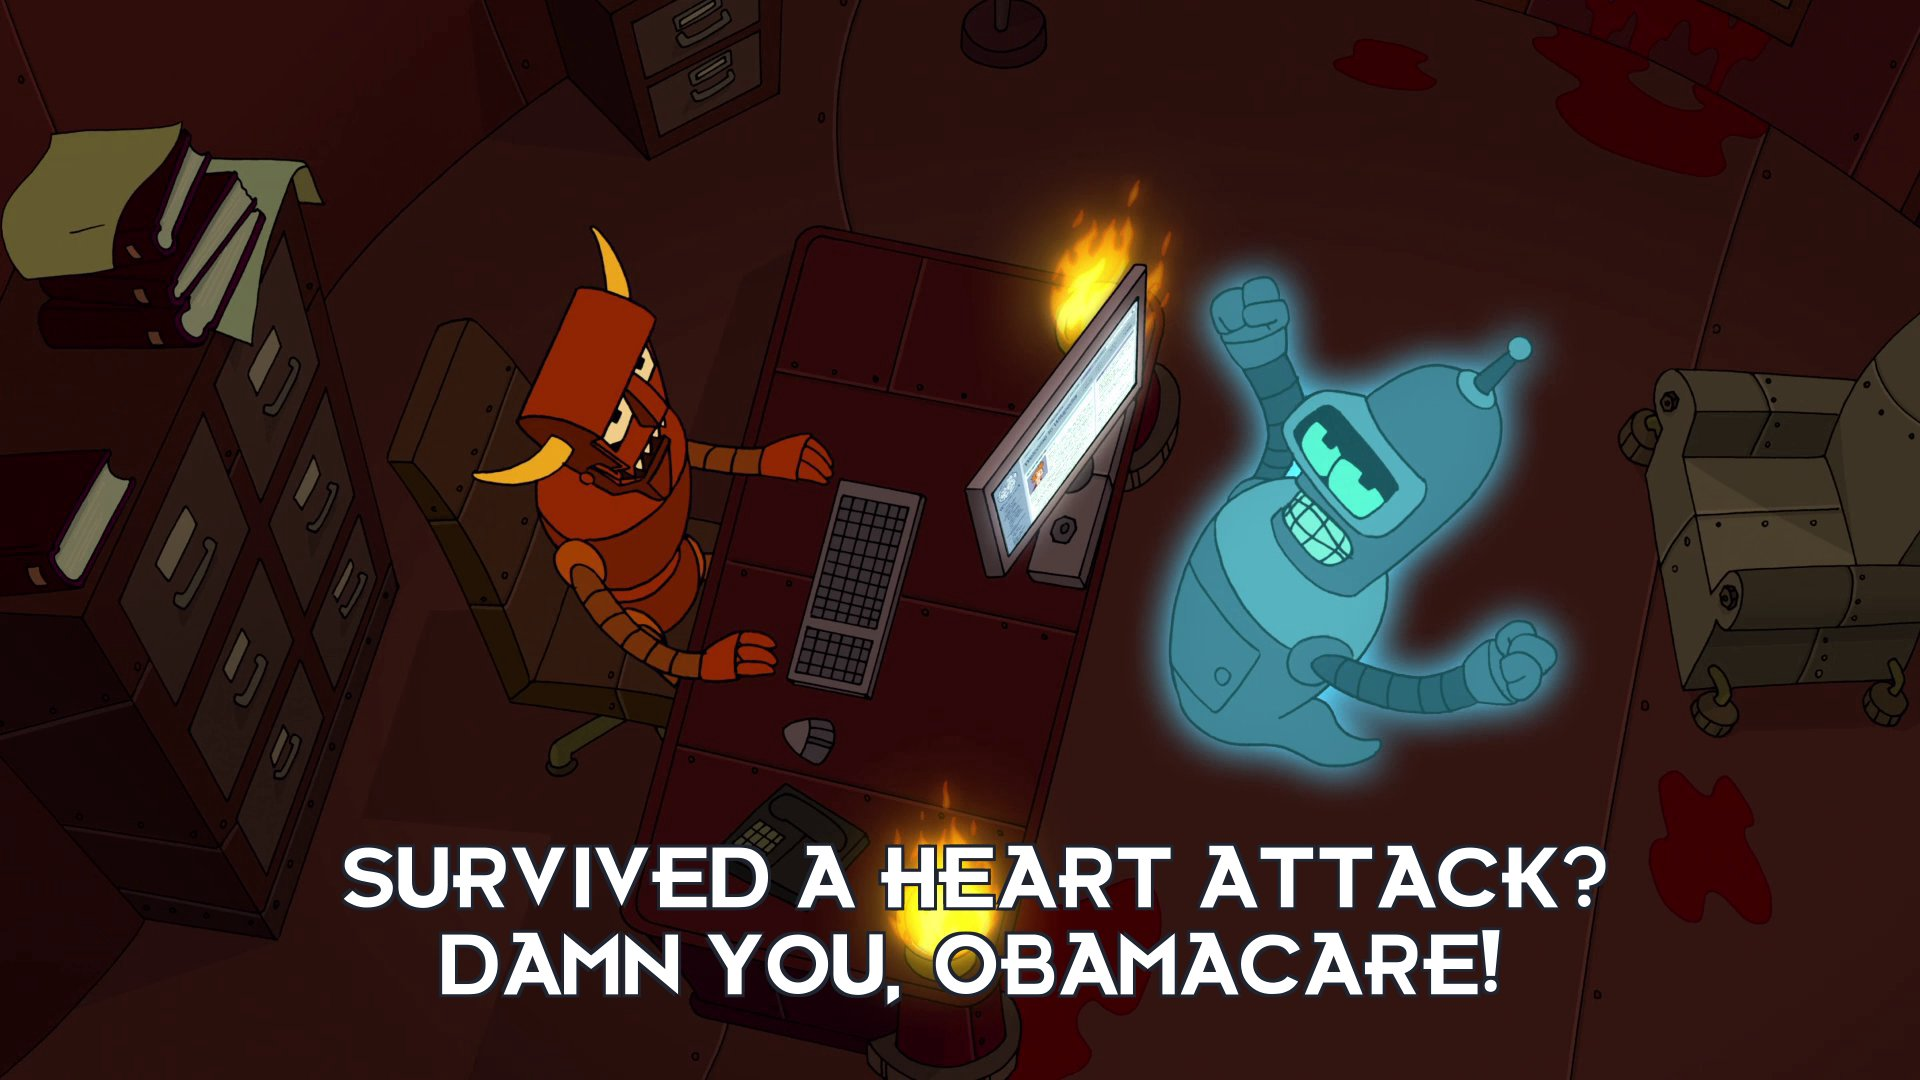 Bender Bending Rodriguez: Survived a heart attack? Damn you, Obamacare!